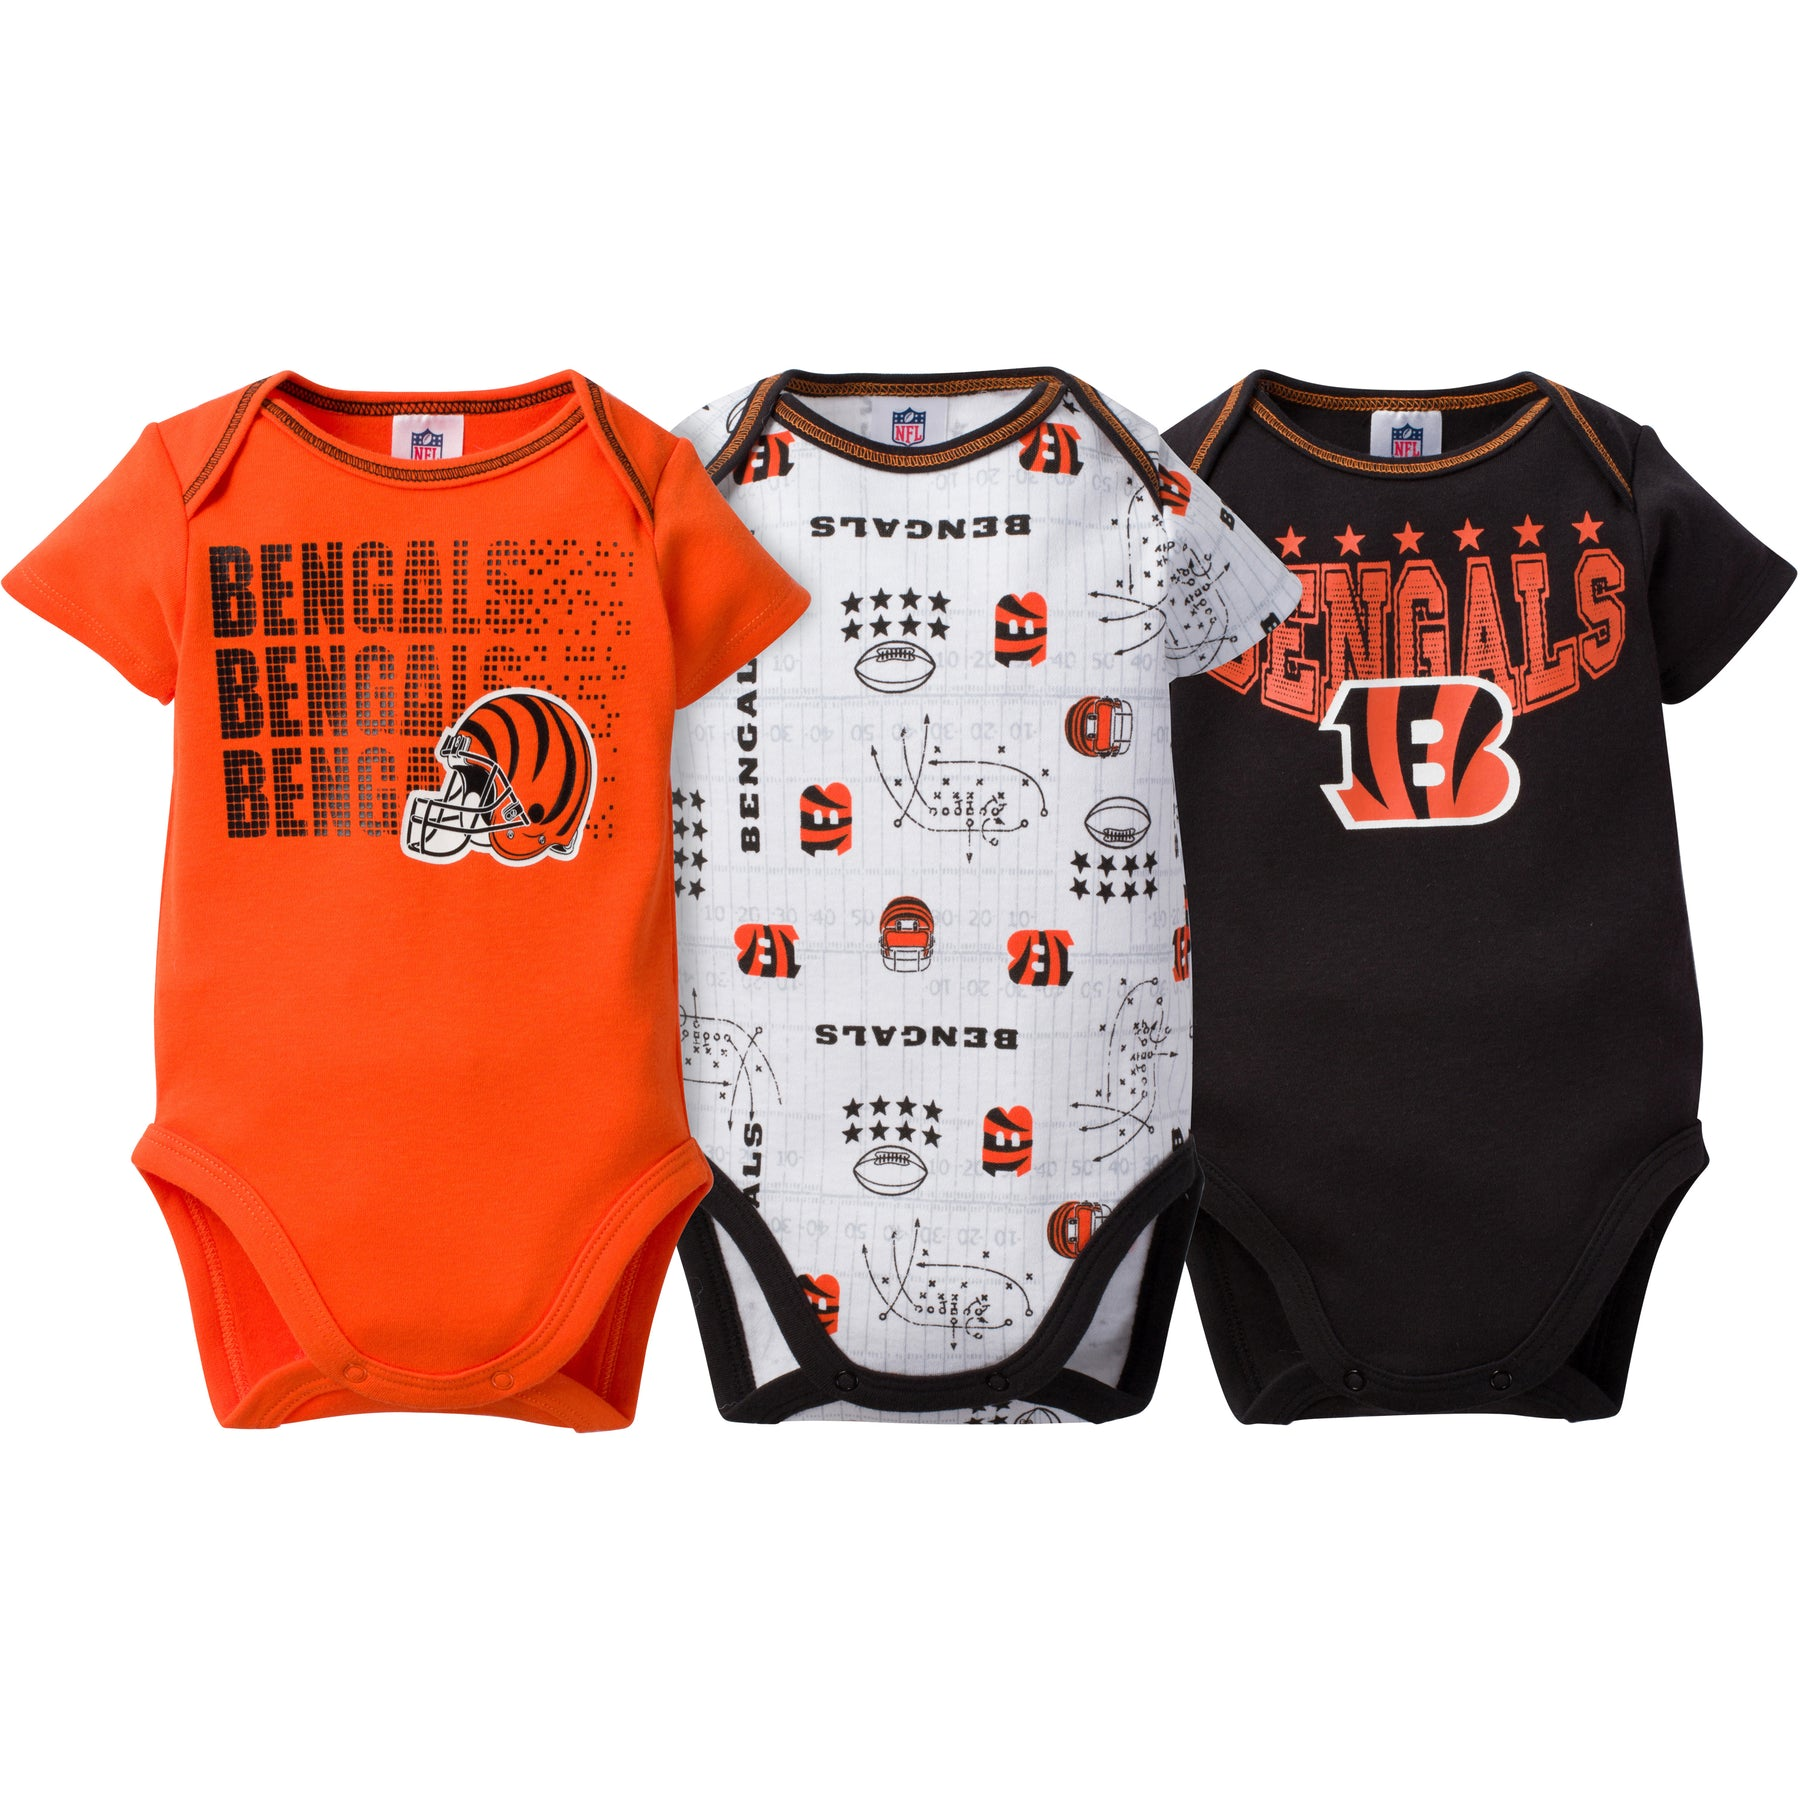 4a076218 Bengals Baby 3 Pack Short Sleeve Onesies